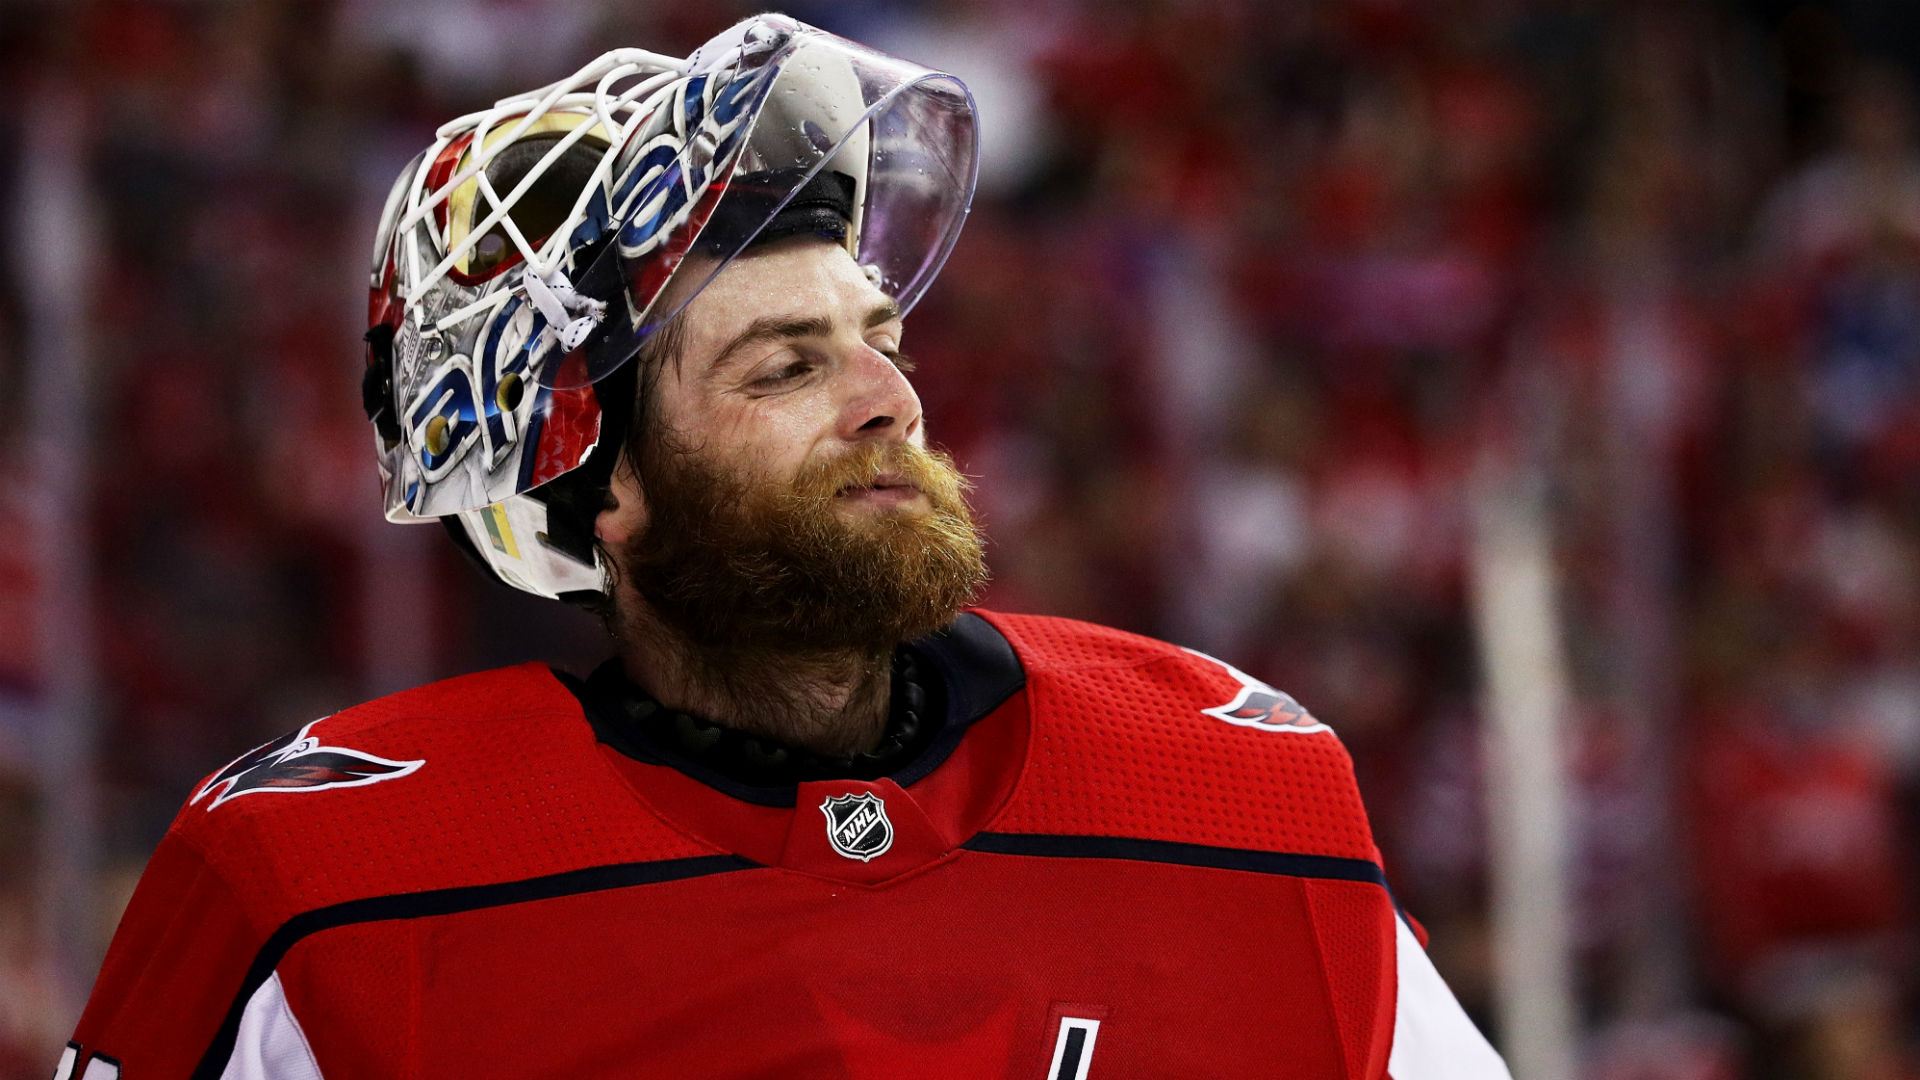 Nhl Playoffs 2018 Capitals Braden Holtby Makes 24 Saves Records First Shutout Of Season In Game 6 Win Sporting News